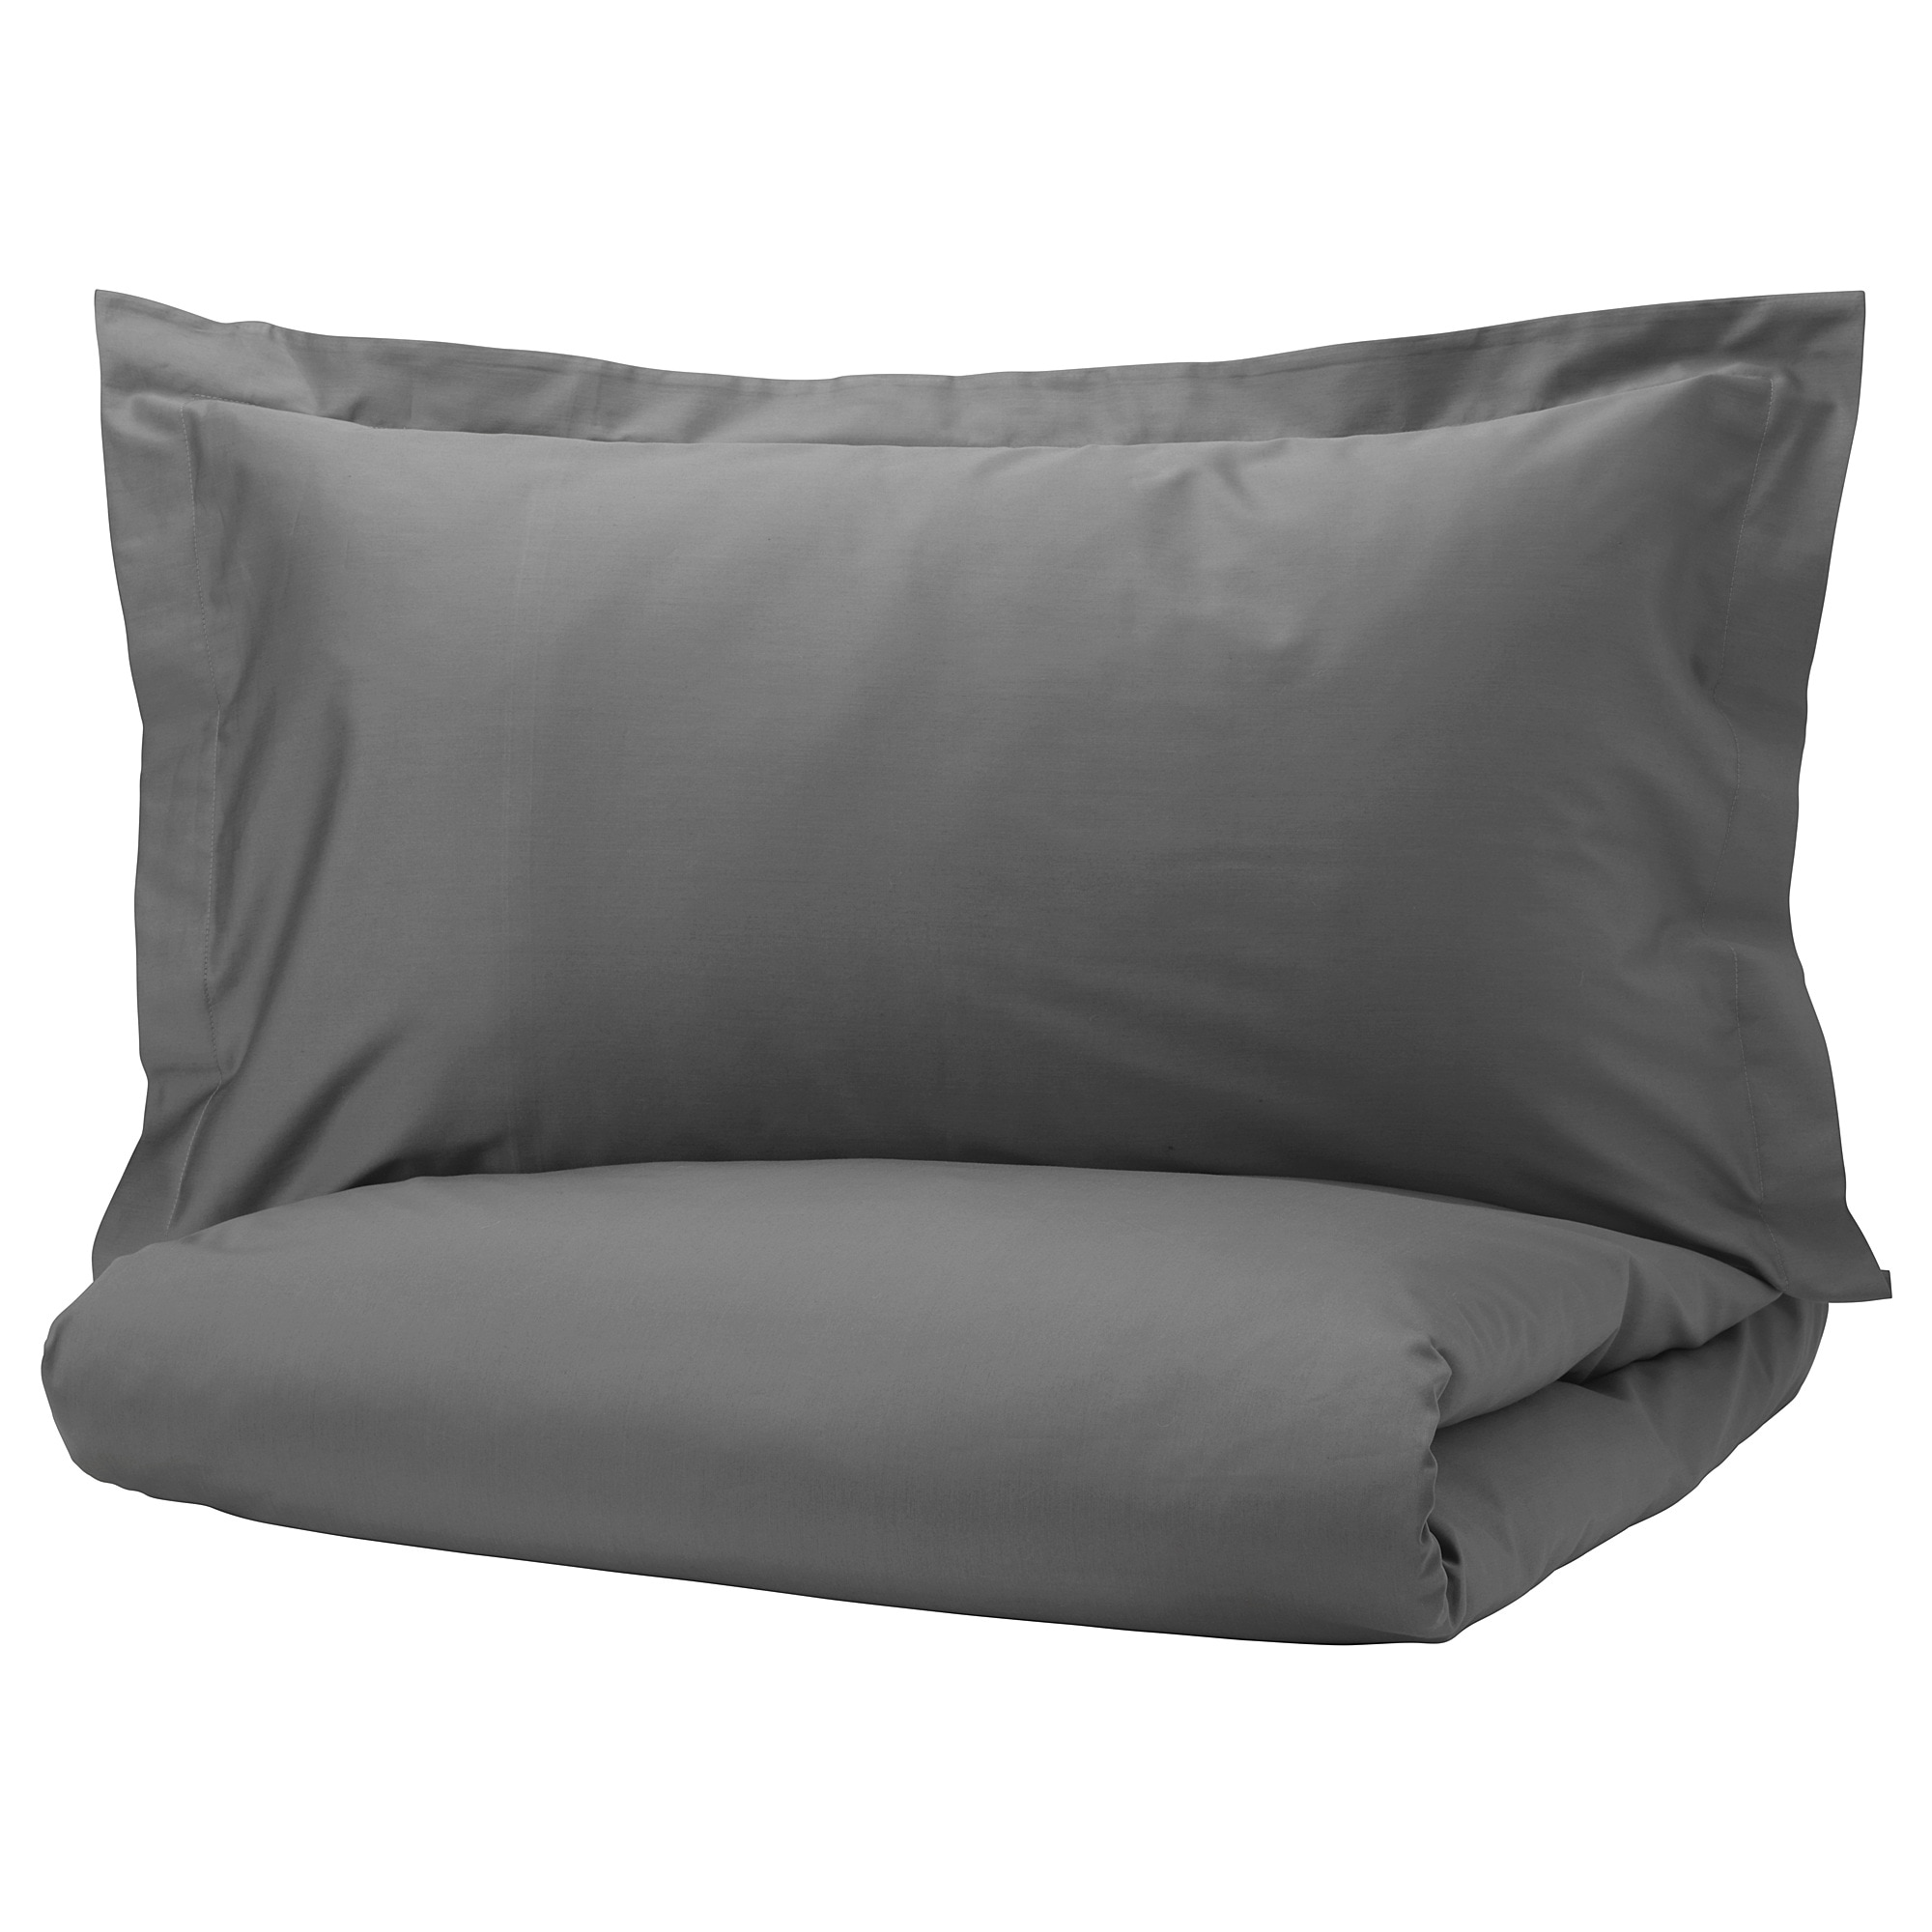 Cotton Solid Color Standard Queen Size Bedding Pillow Covers Cases Pillowcases